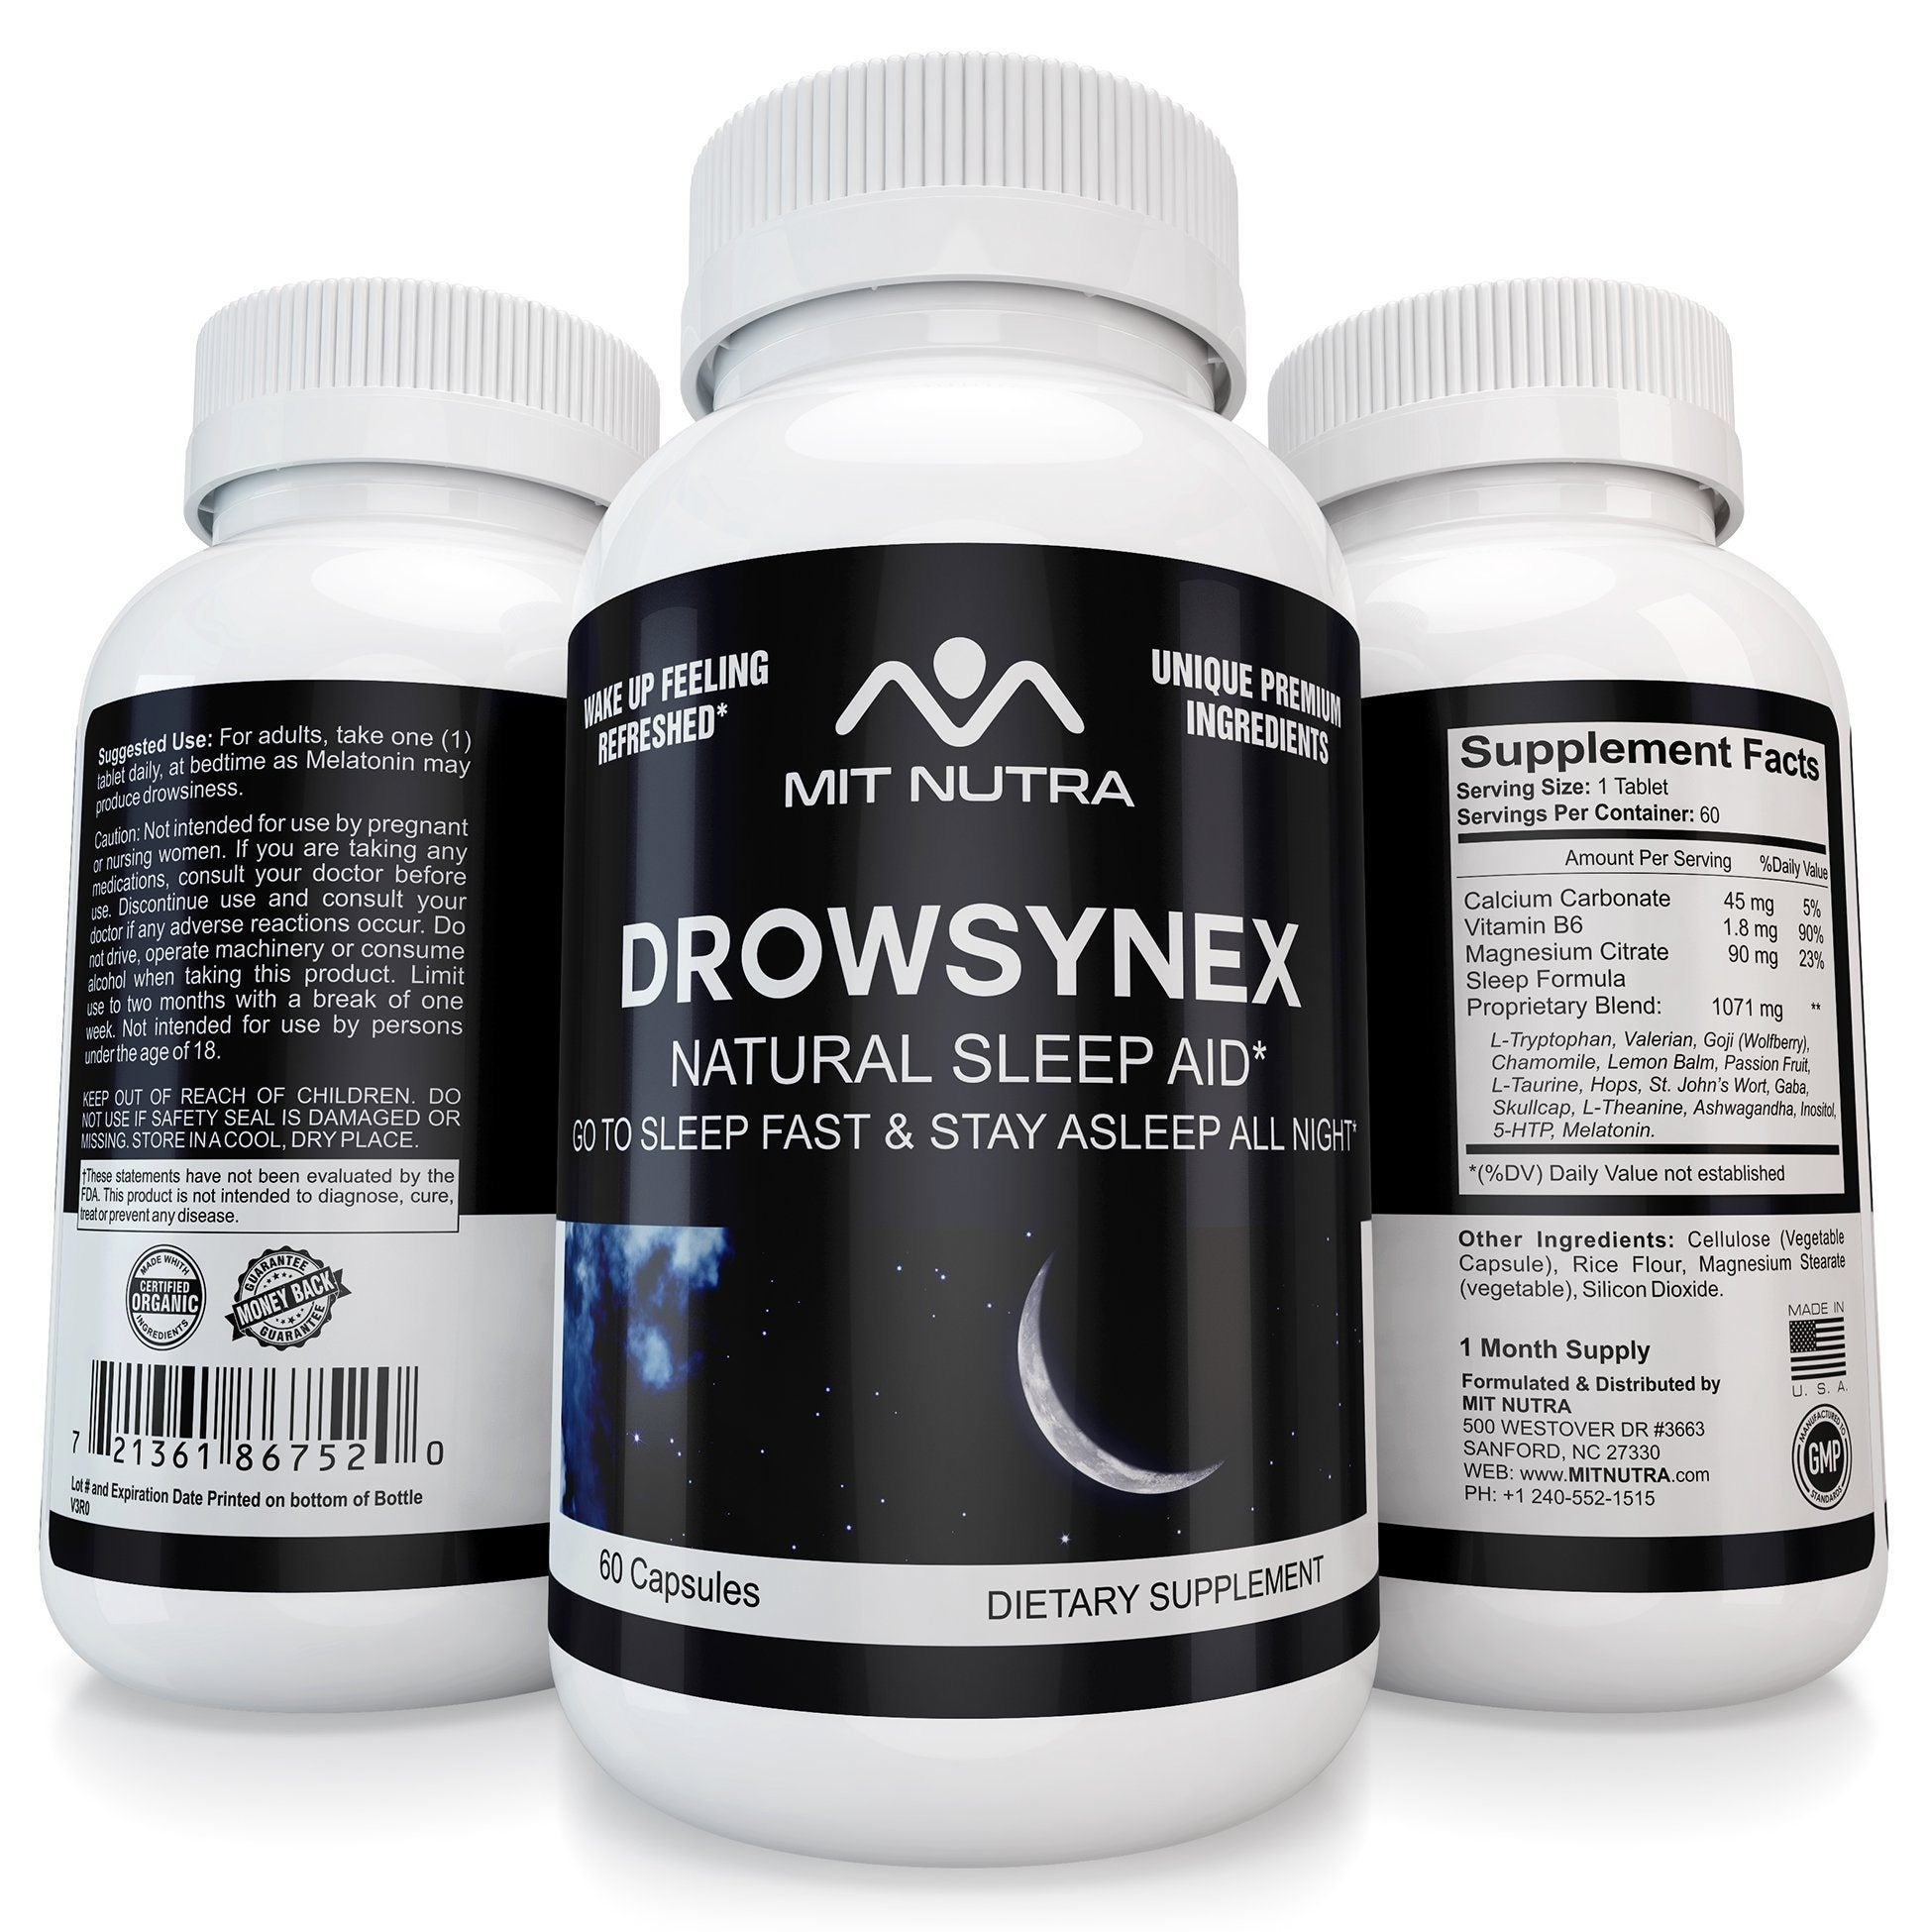 Drowsynex - Natural Sleep Aid That Works!